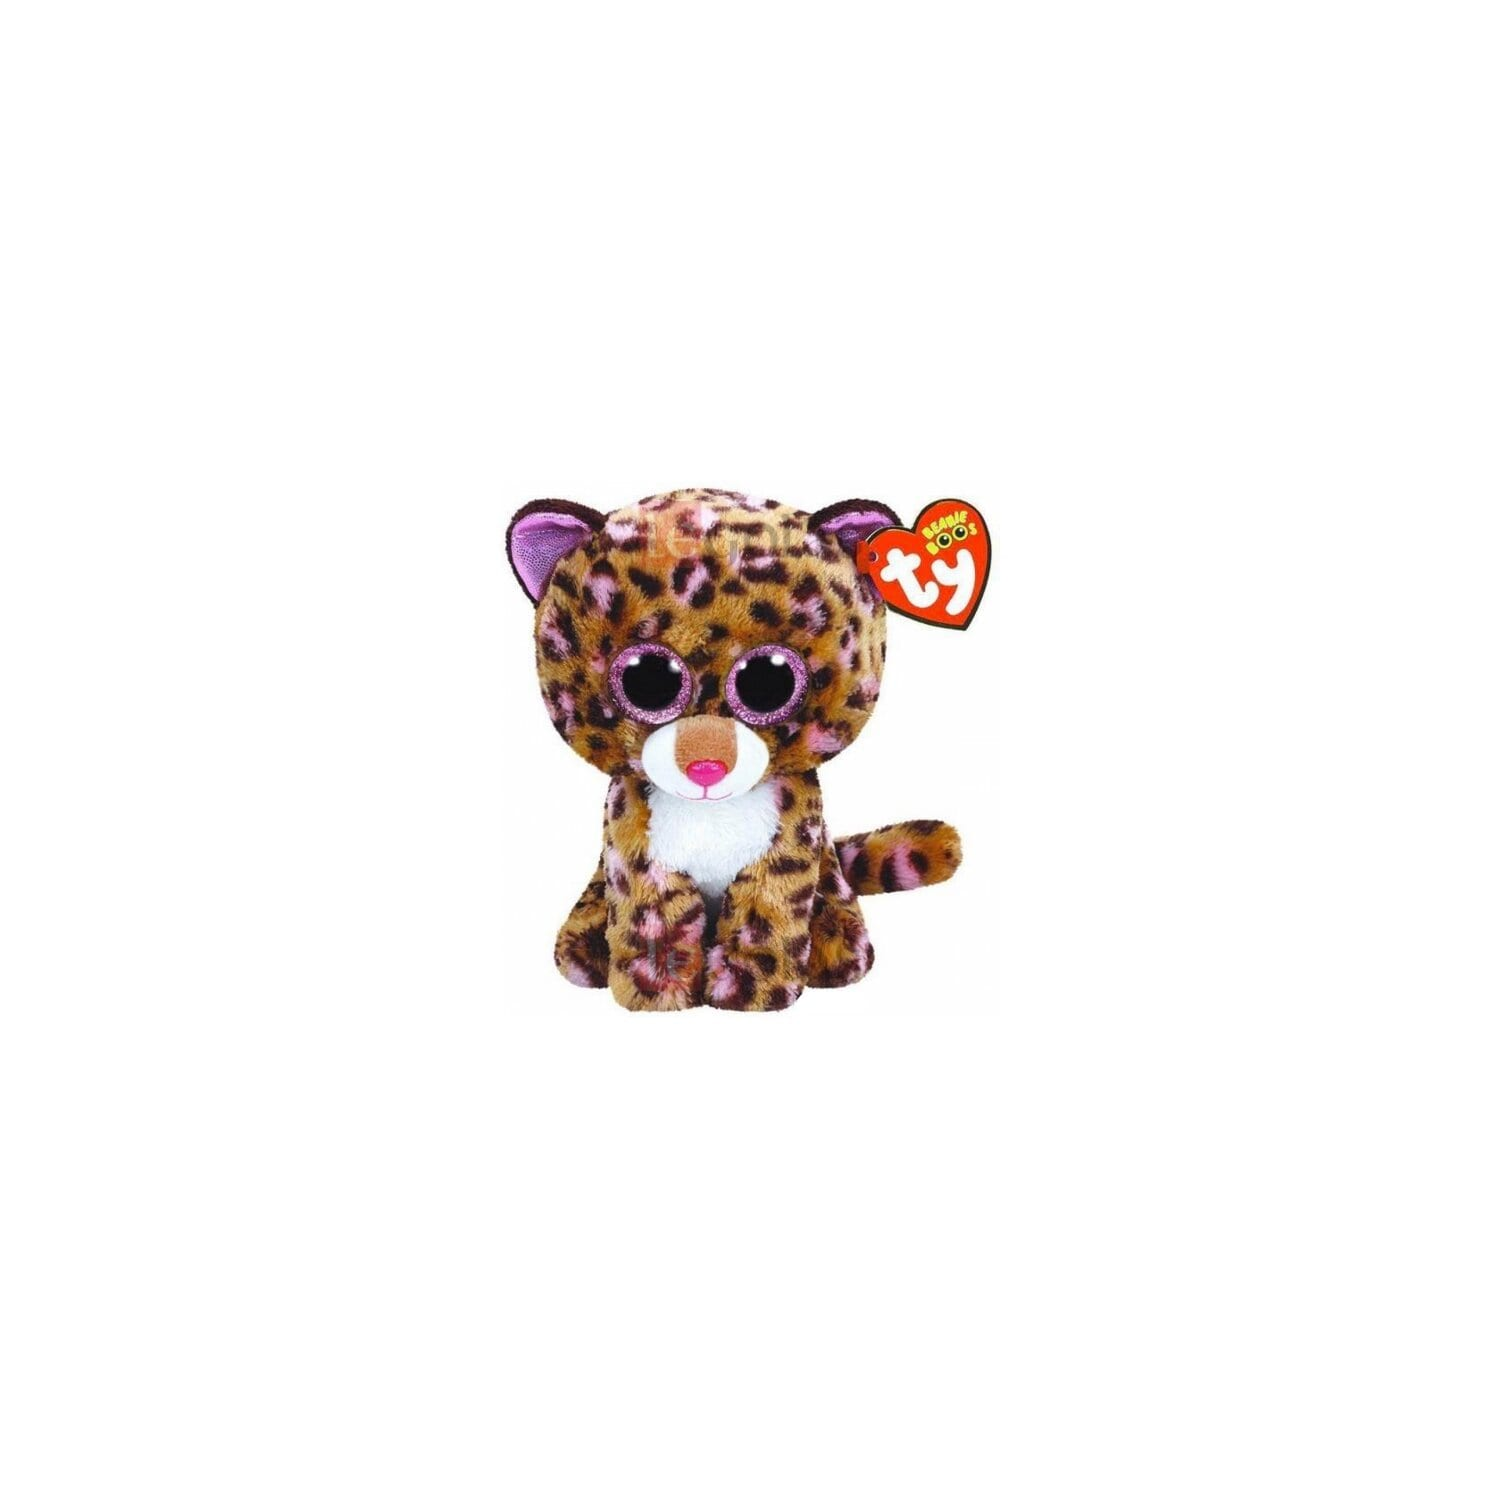 Maskotka TY INC Beanie Boos Patches - Leopard Tan 24 cm 37068